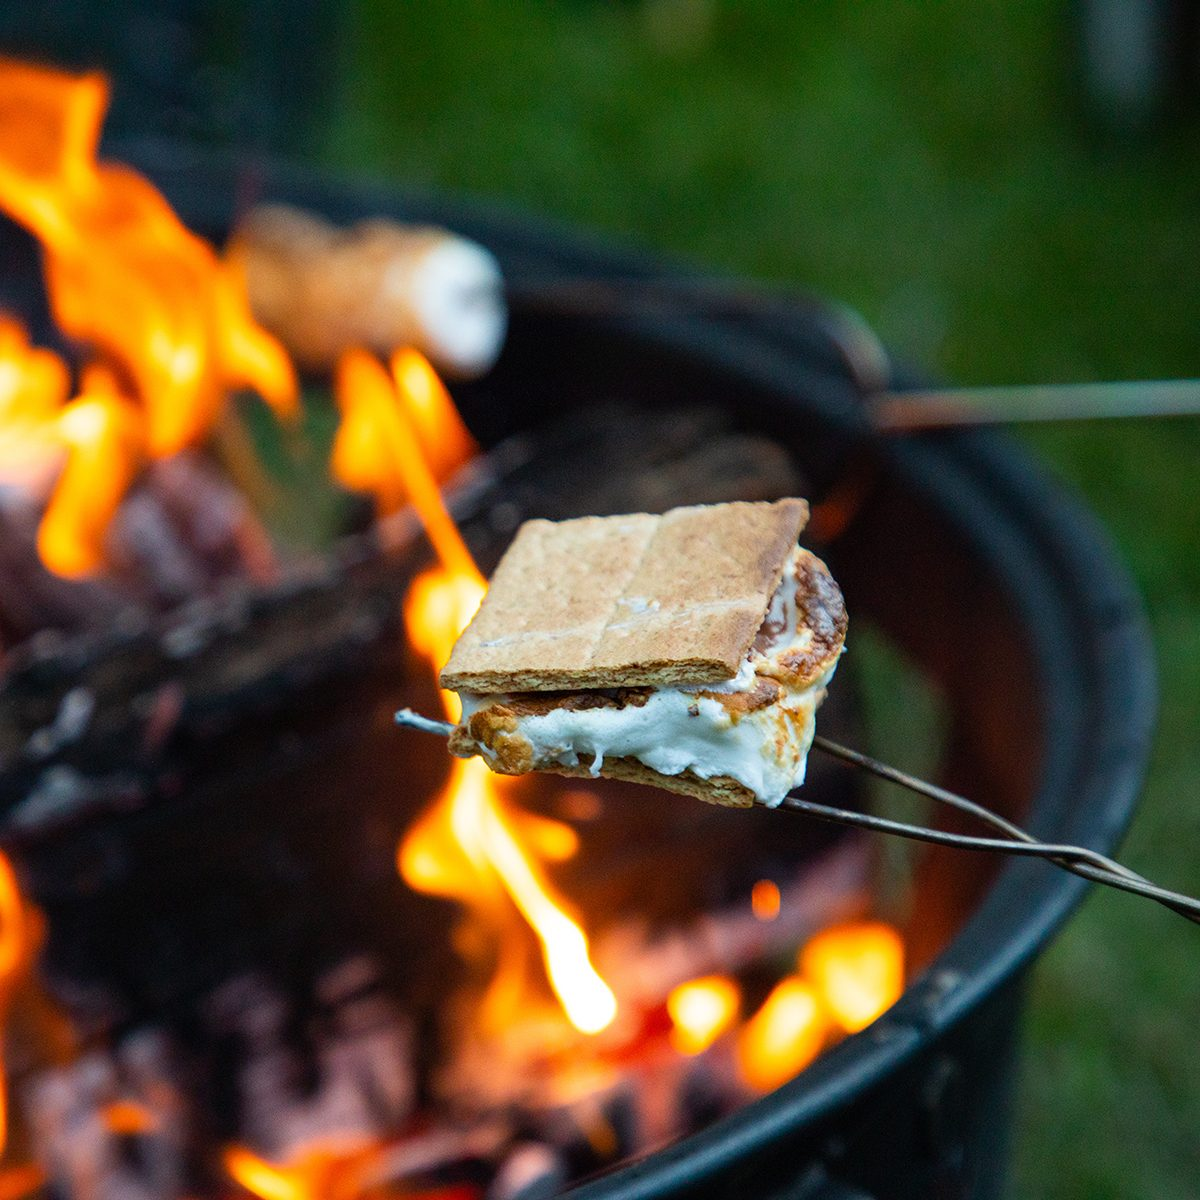 Cooking s'mores on a cool summer night in the mountains of northern Idaho